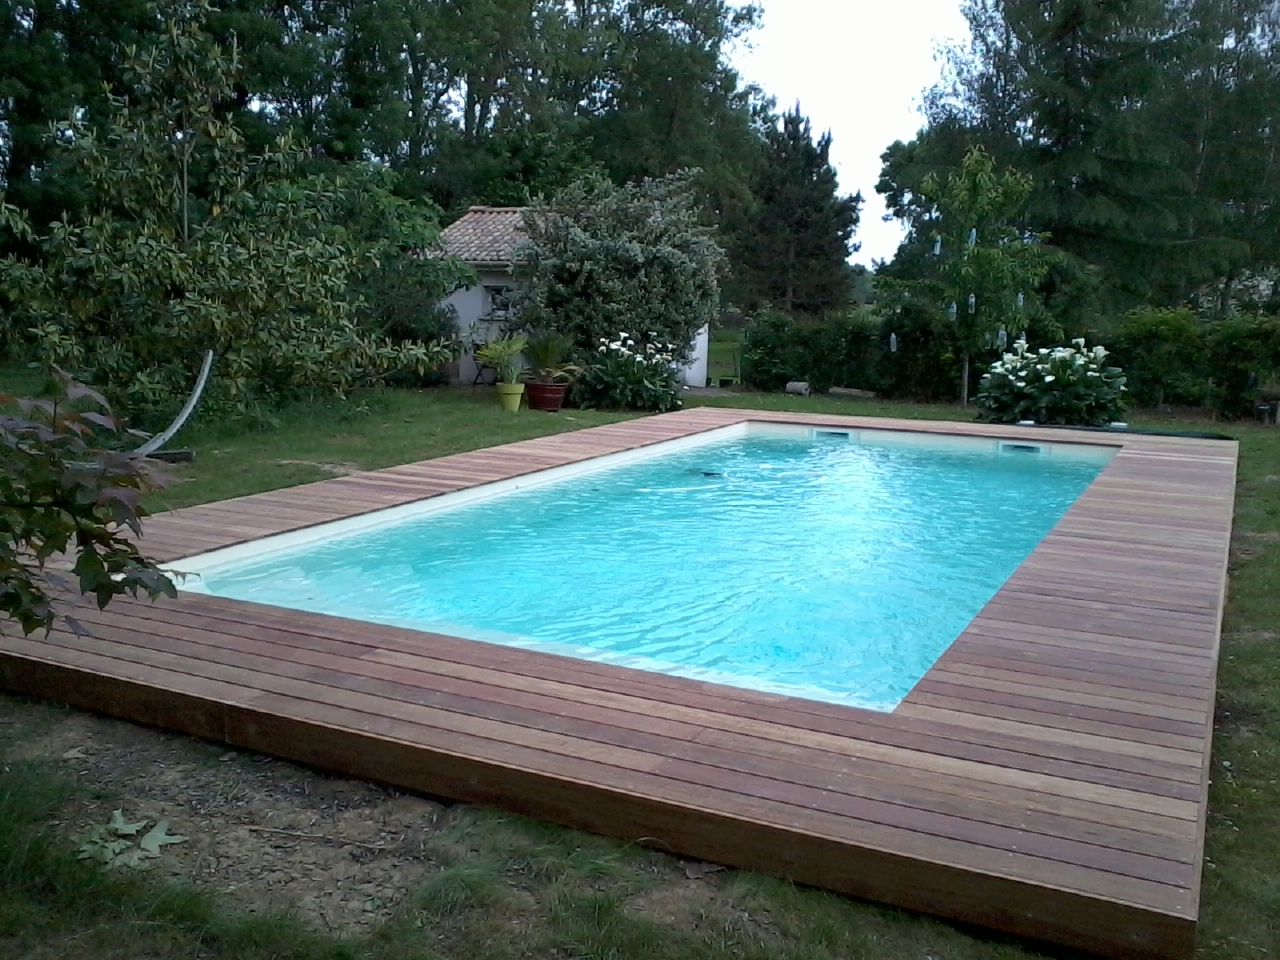 Piscine en solde destockage piscine bois solde for Destockage piscine bois